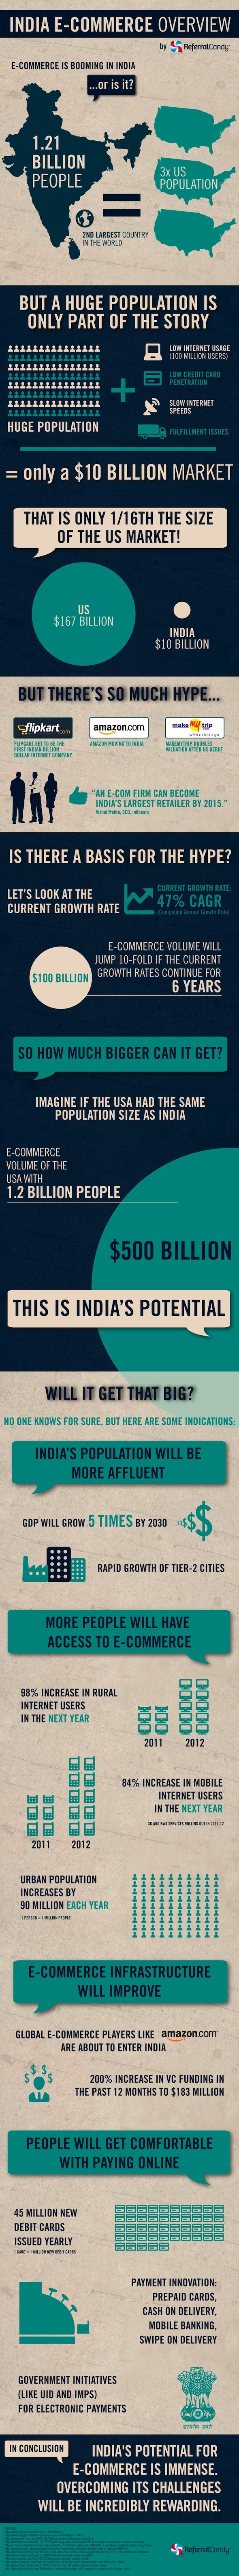 India Ecommerce potential - Infographic